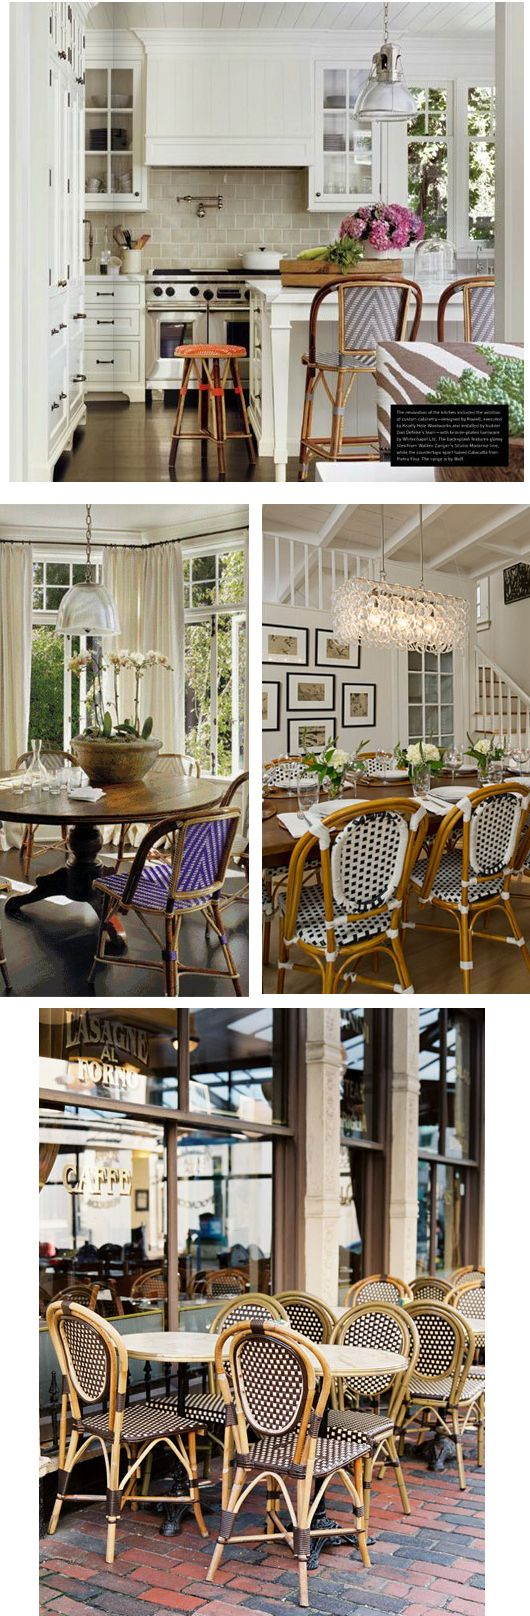 Spaces with French bistro chairs via www.ariannabelle.com/blog